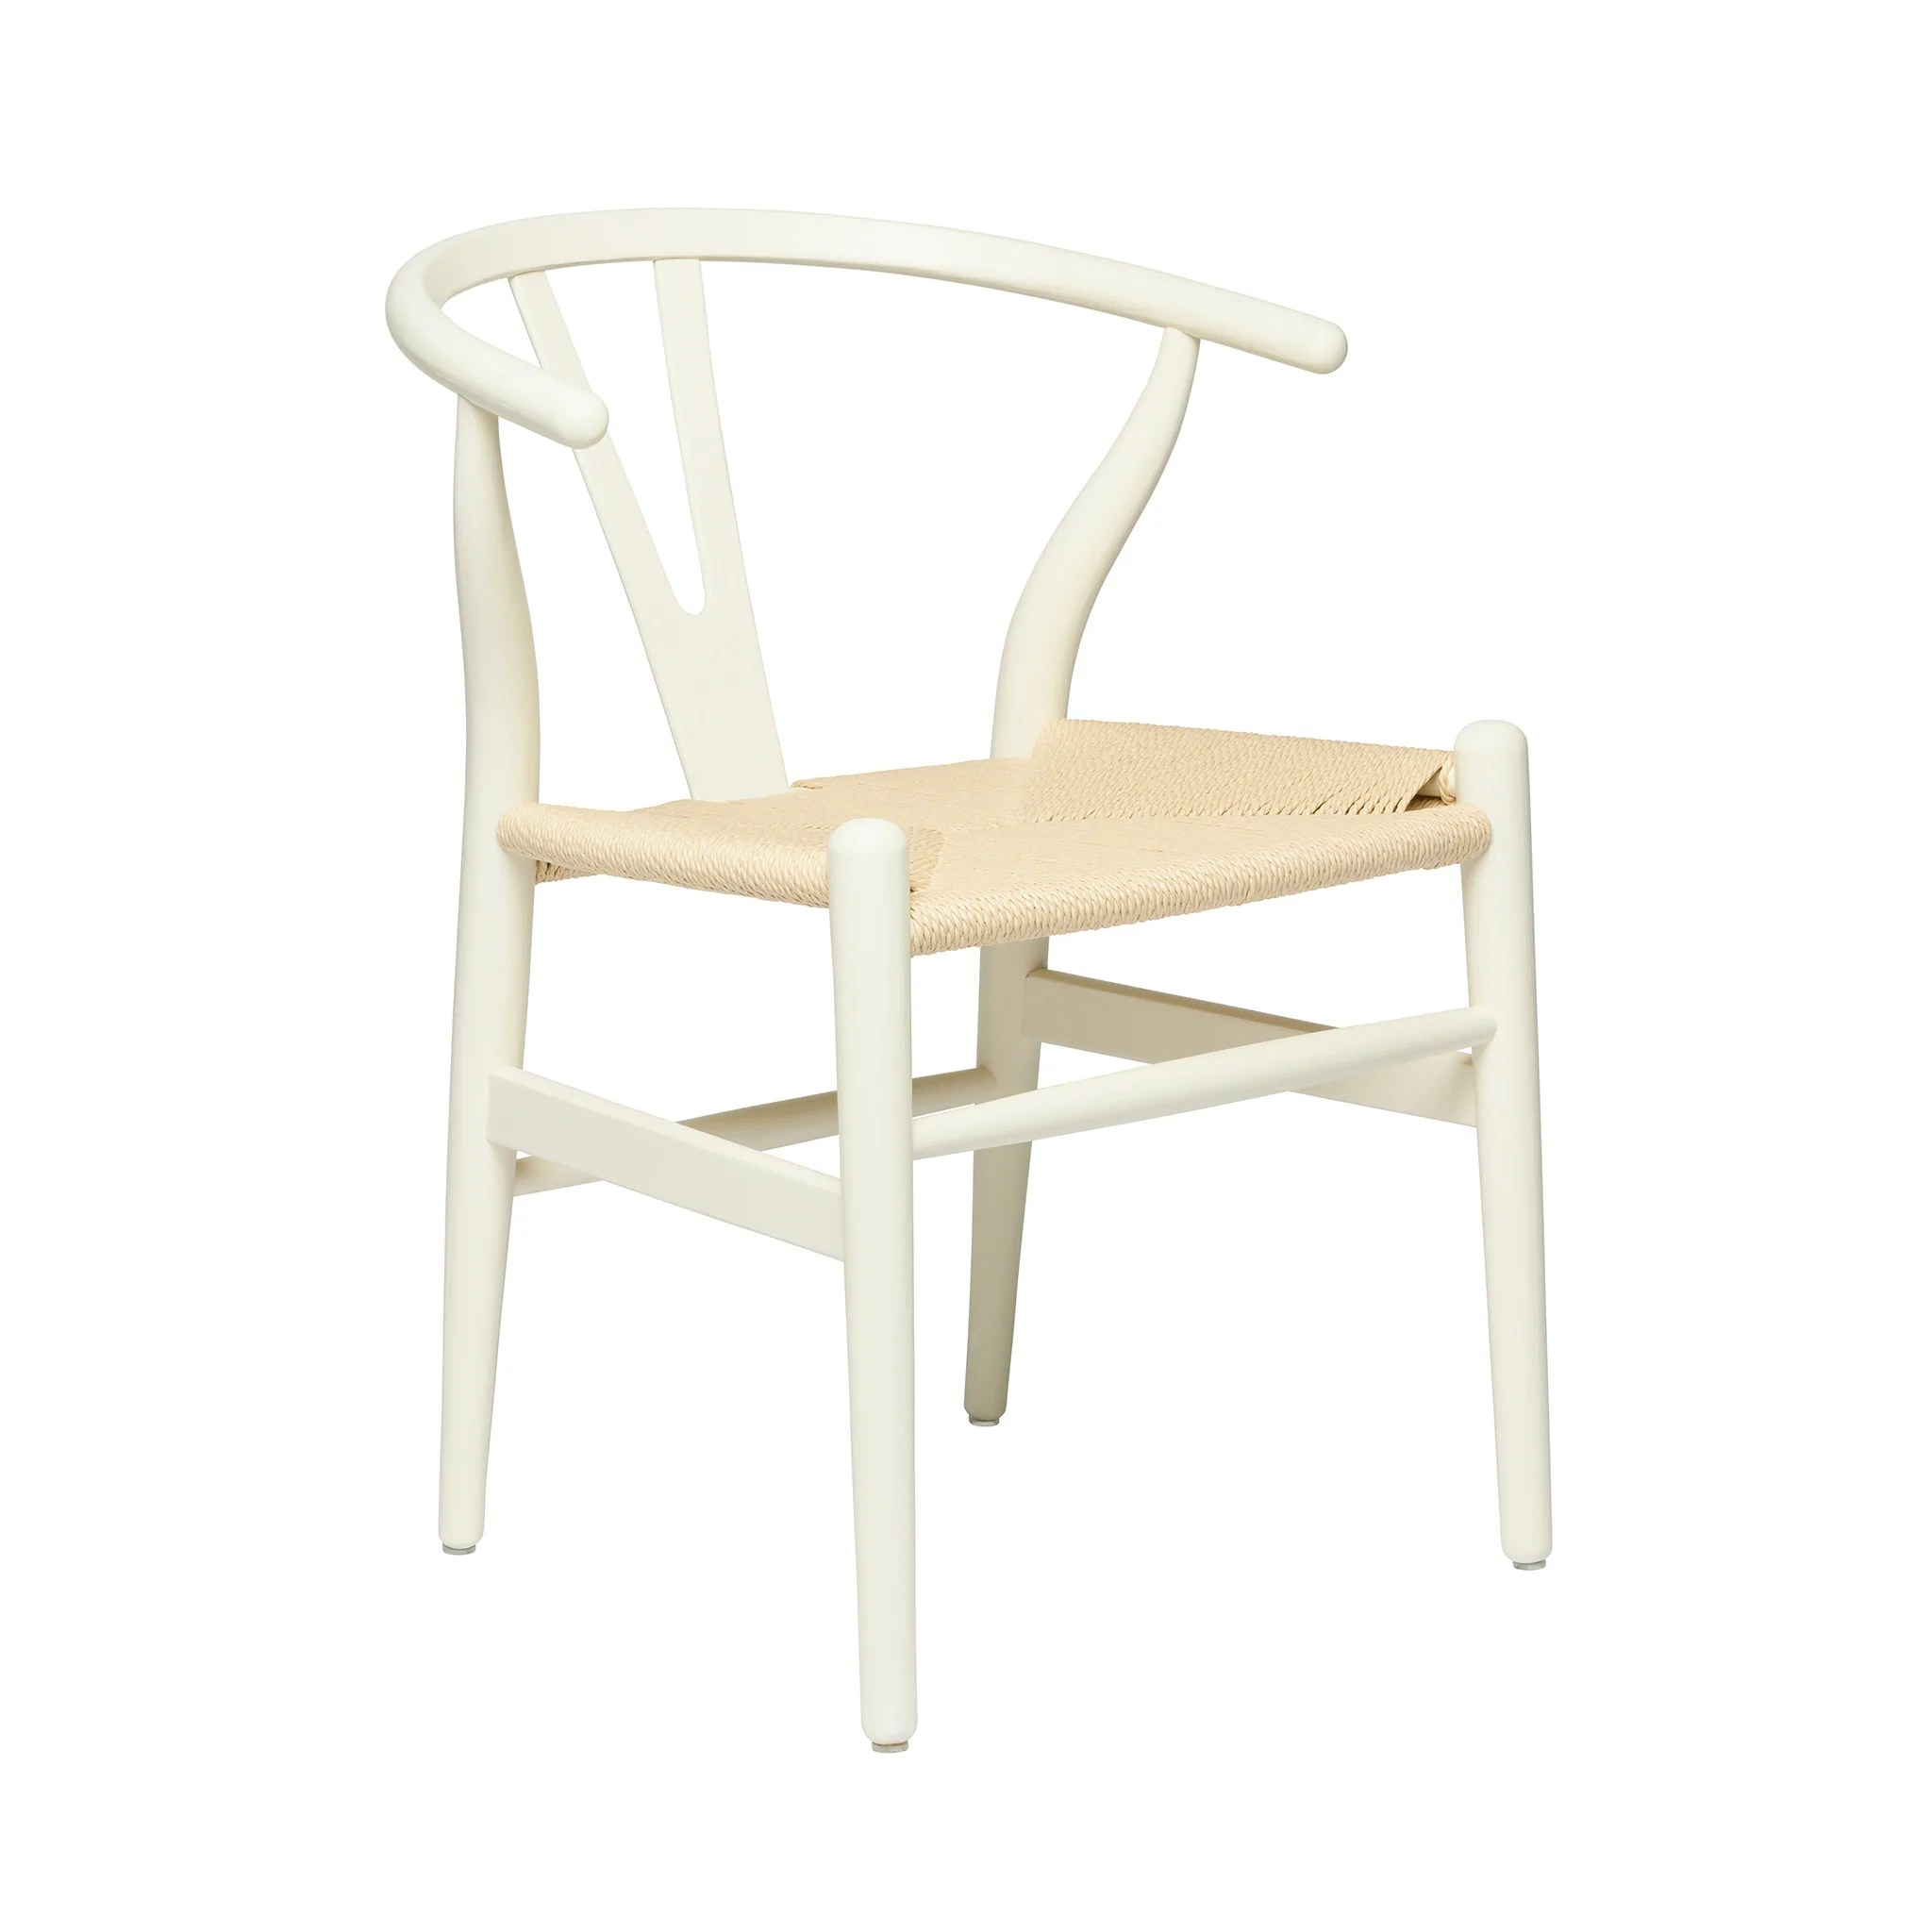 white wishbone chair replica green covers for cheap natural hans wegner